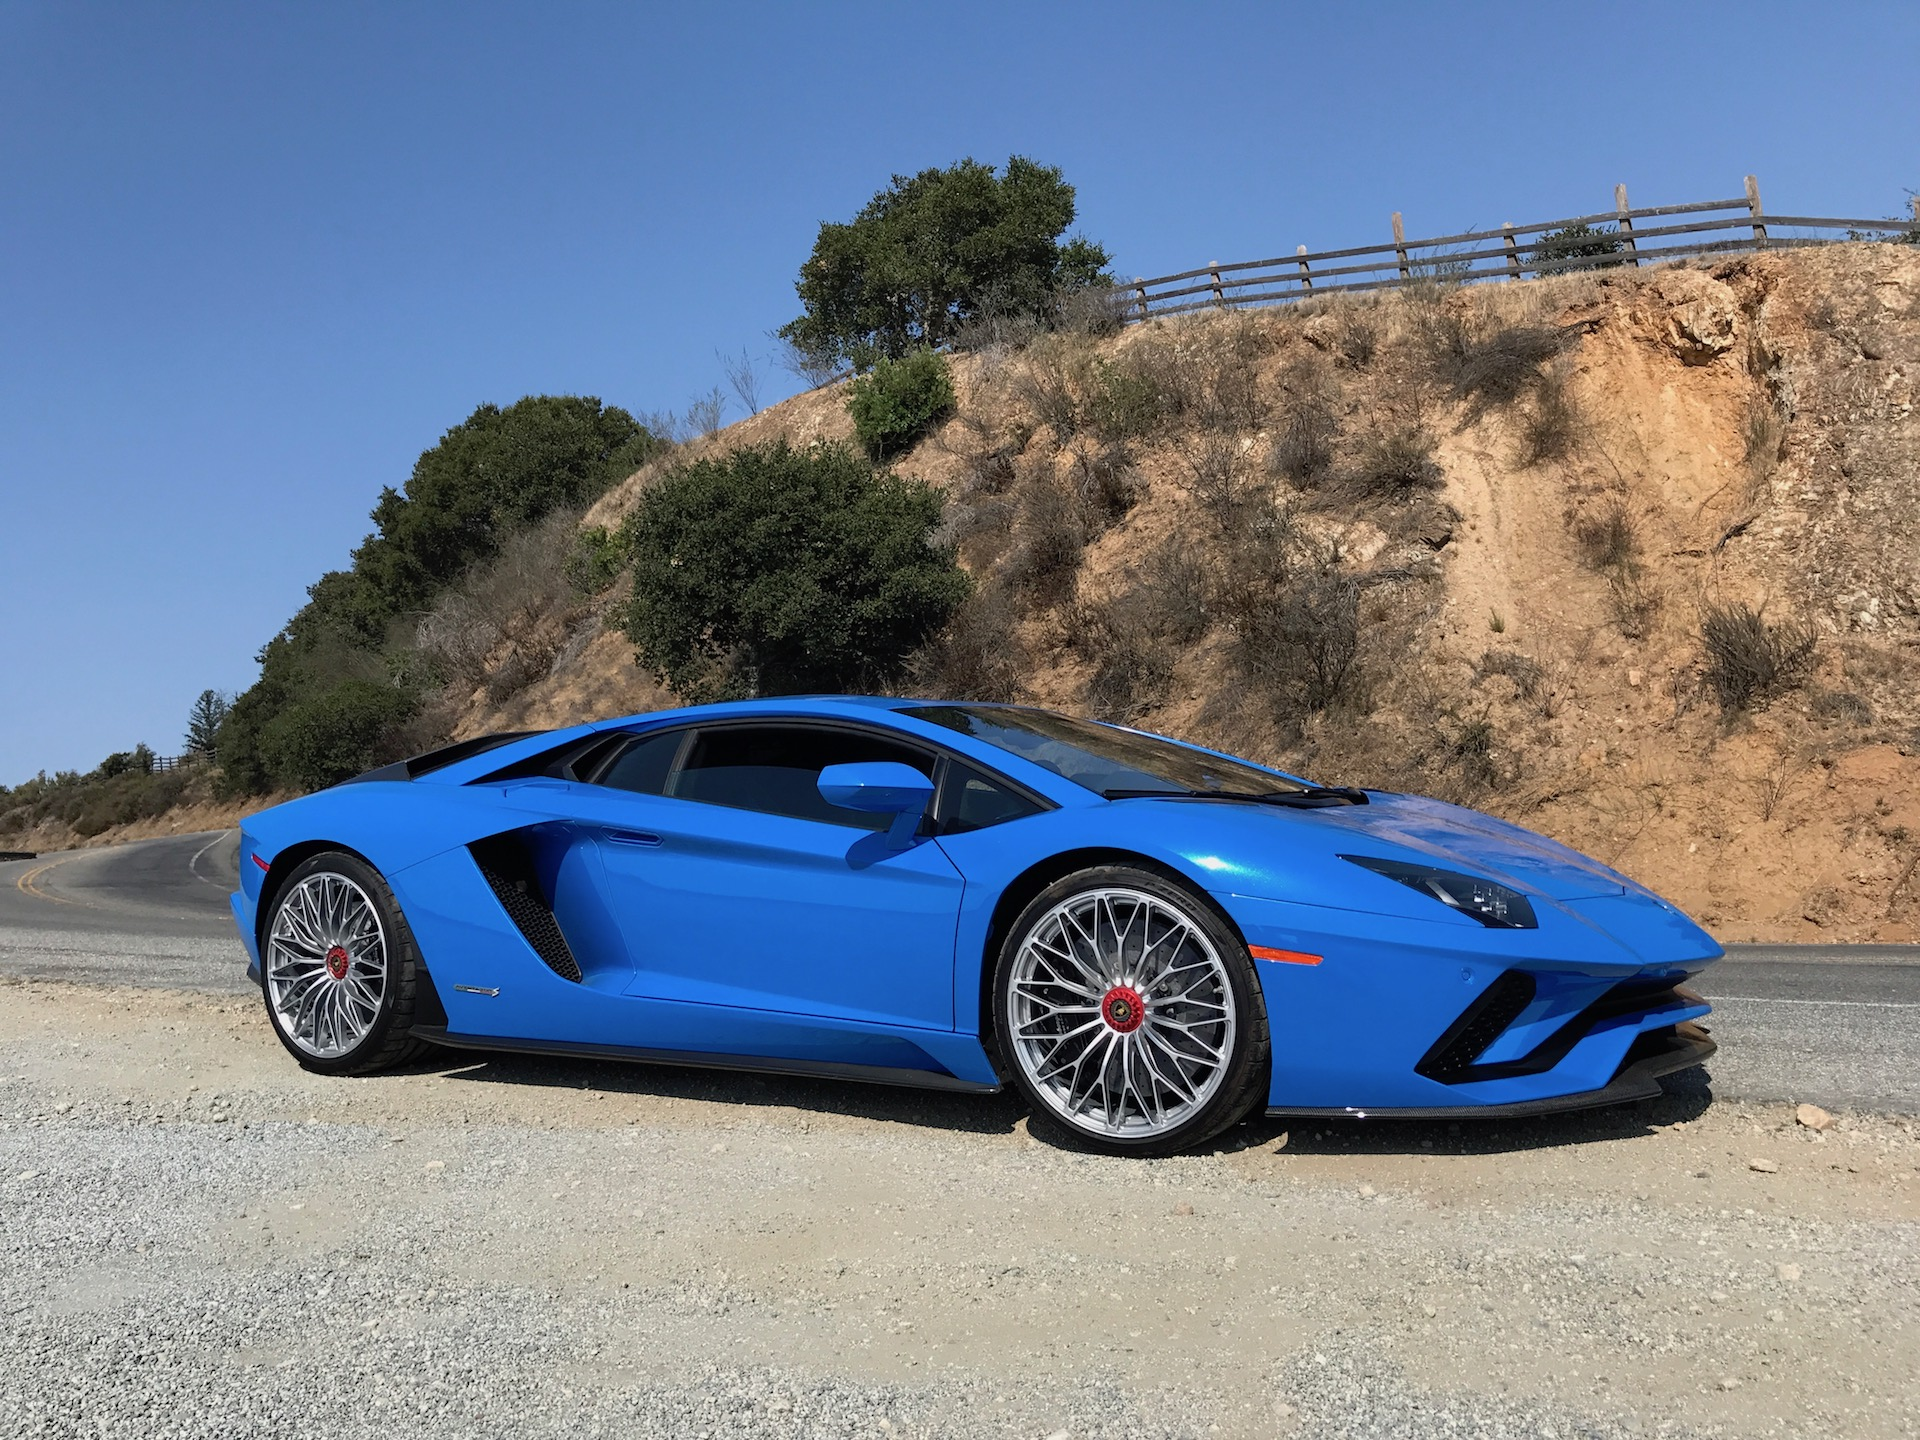 2017 Lamborghini Aventador S First Drive Review The Wrong Car For A